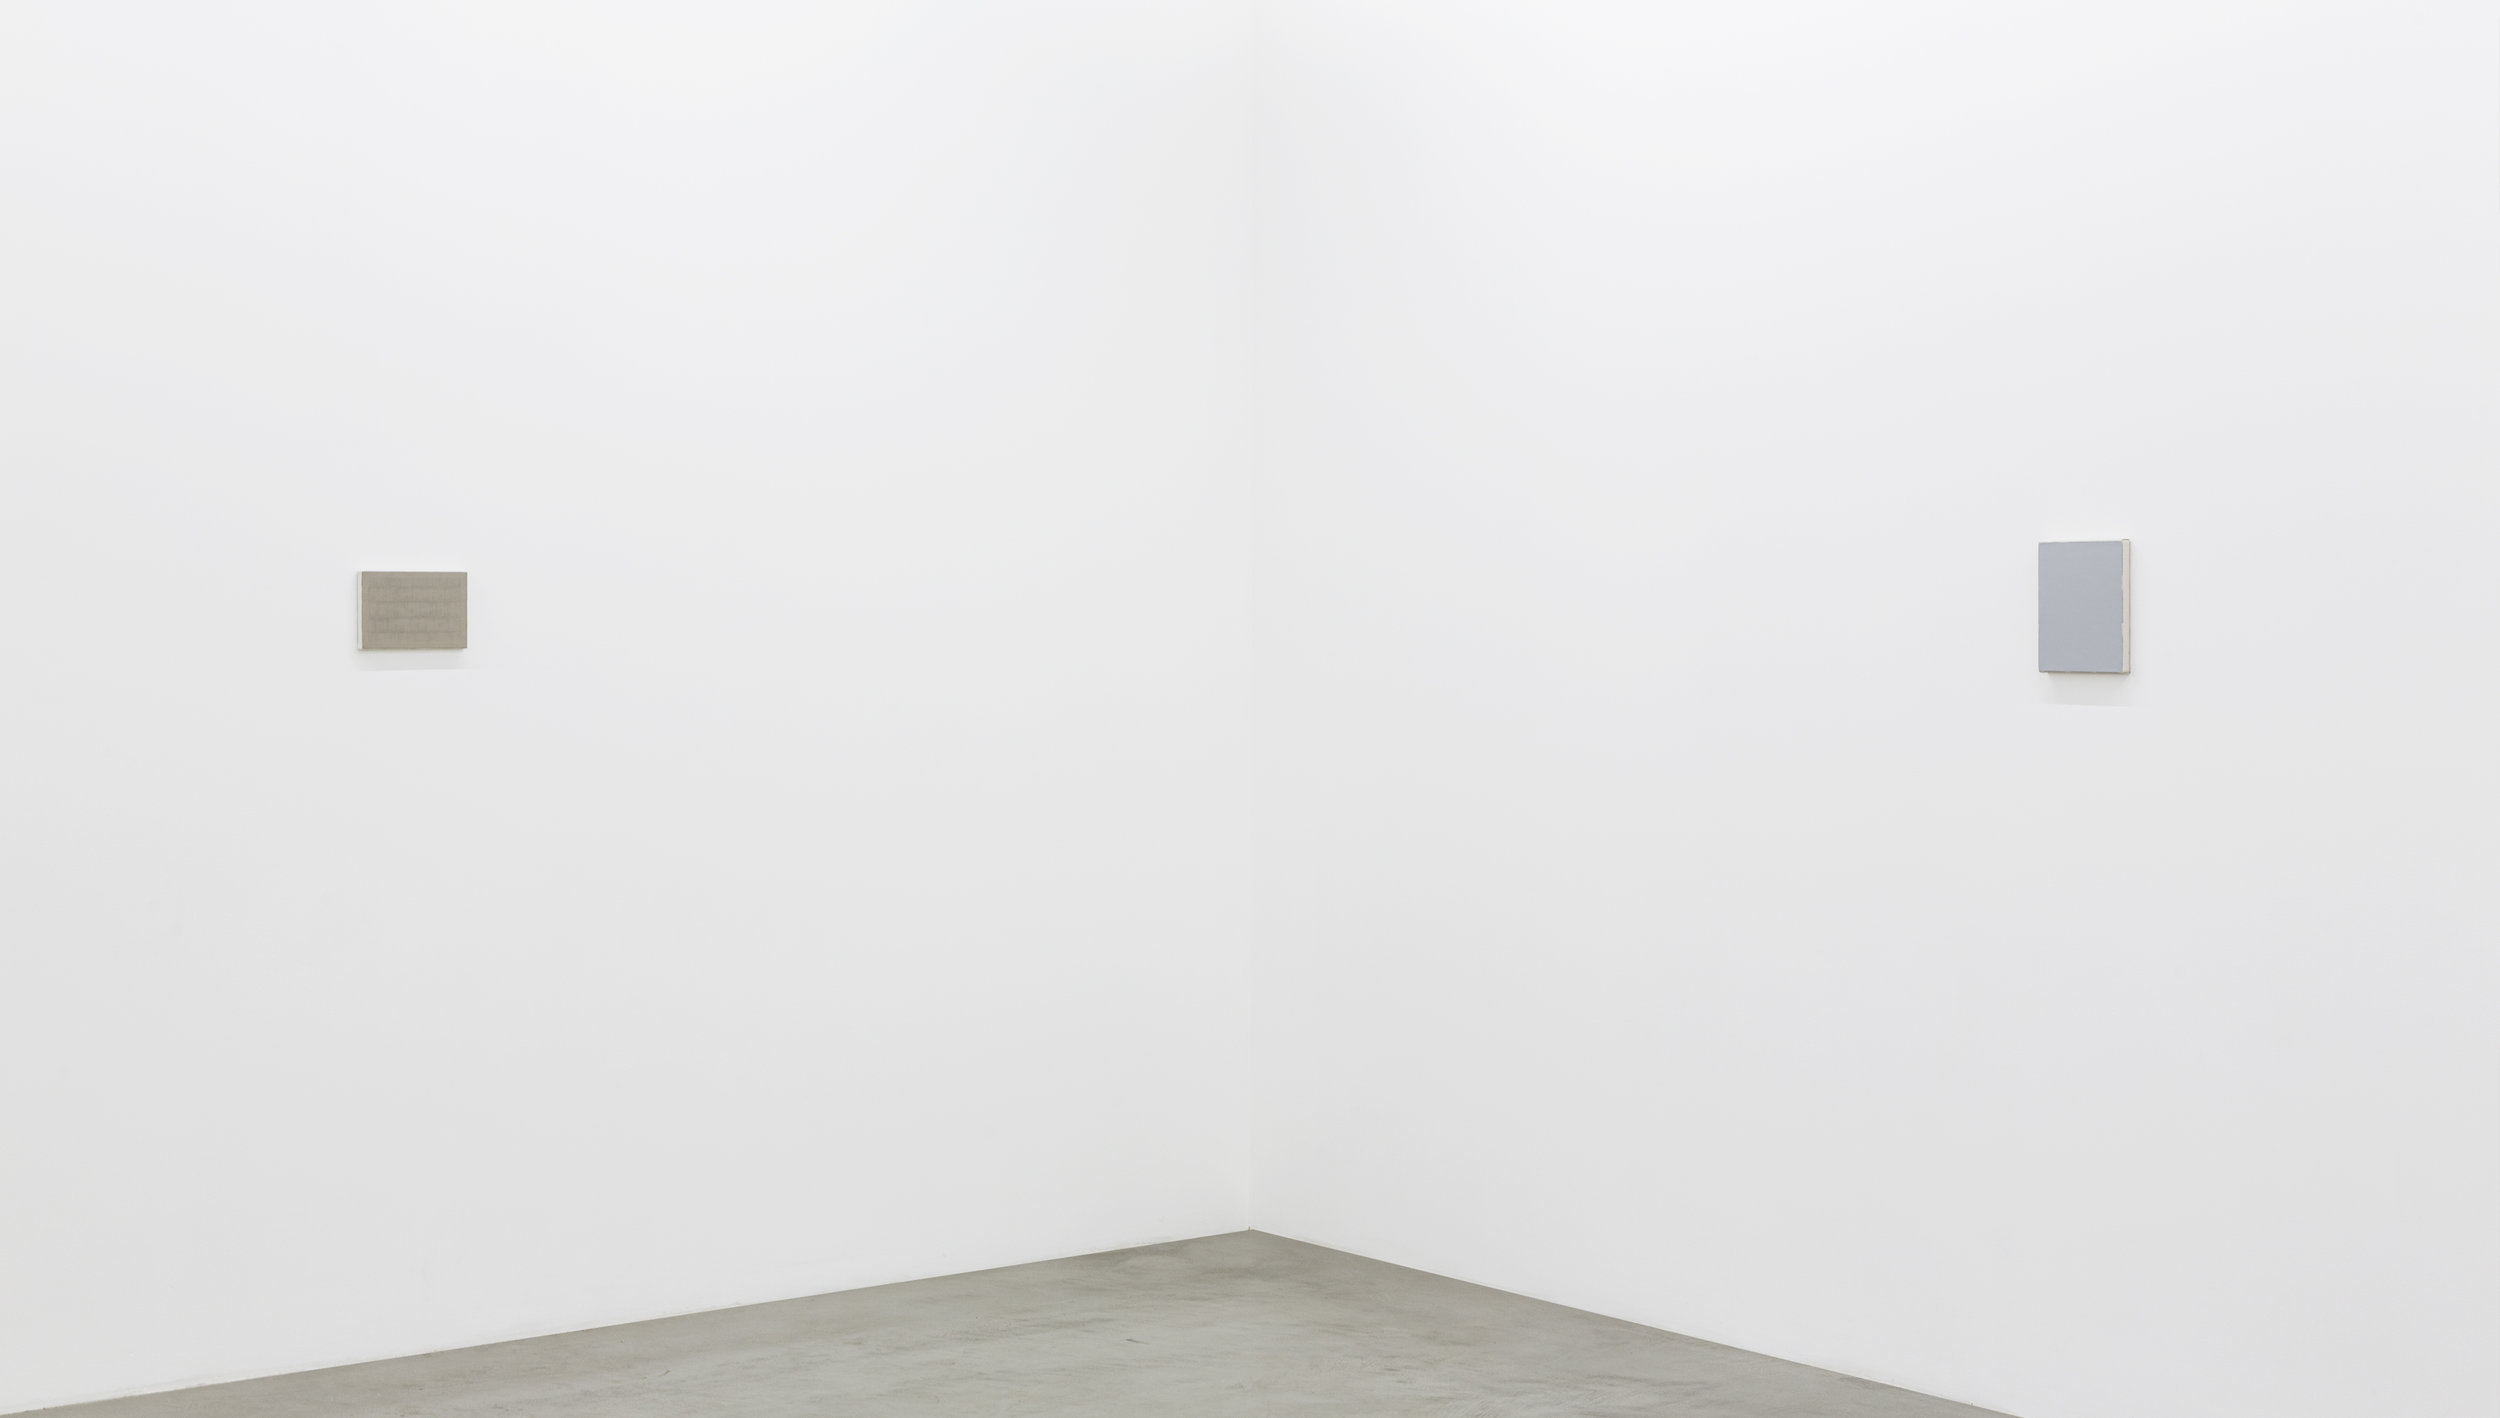 Installation view of Yui Yaegashi's small subtle works.